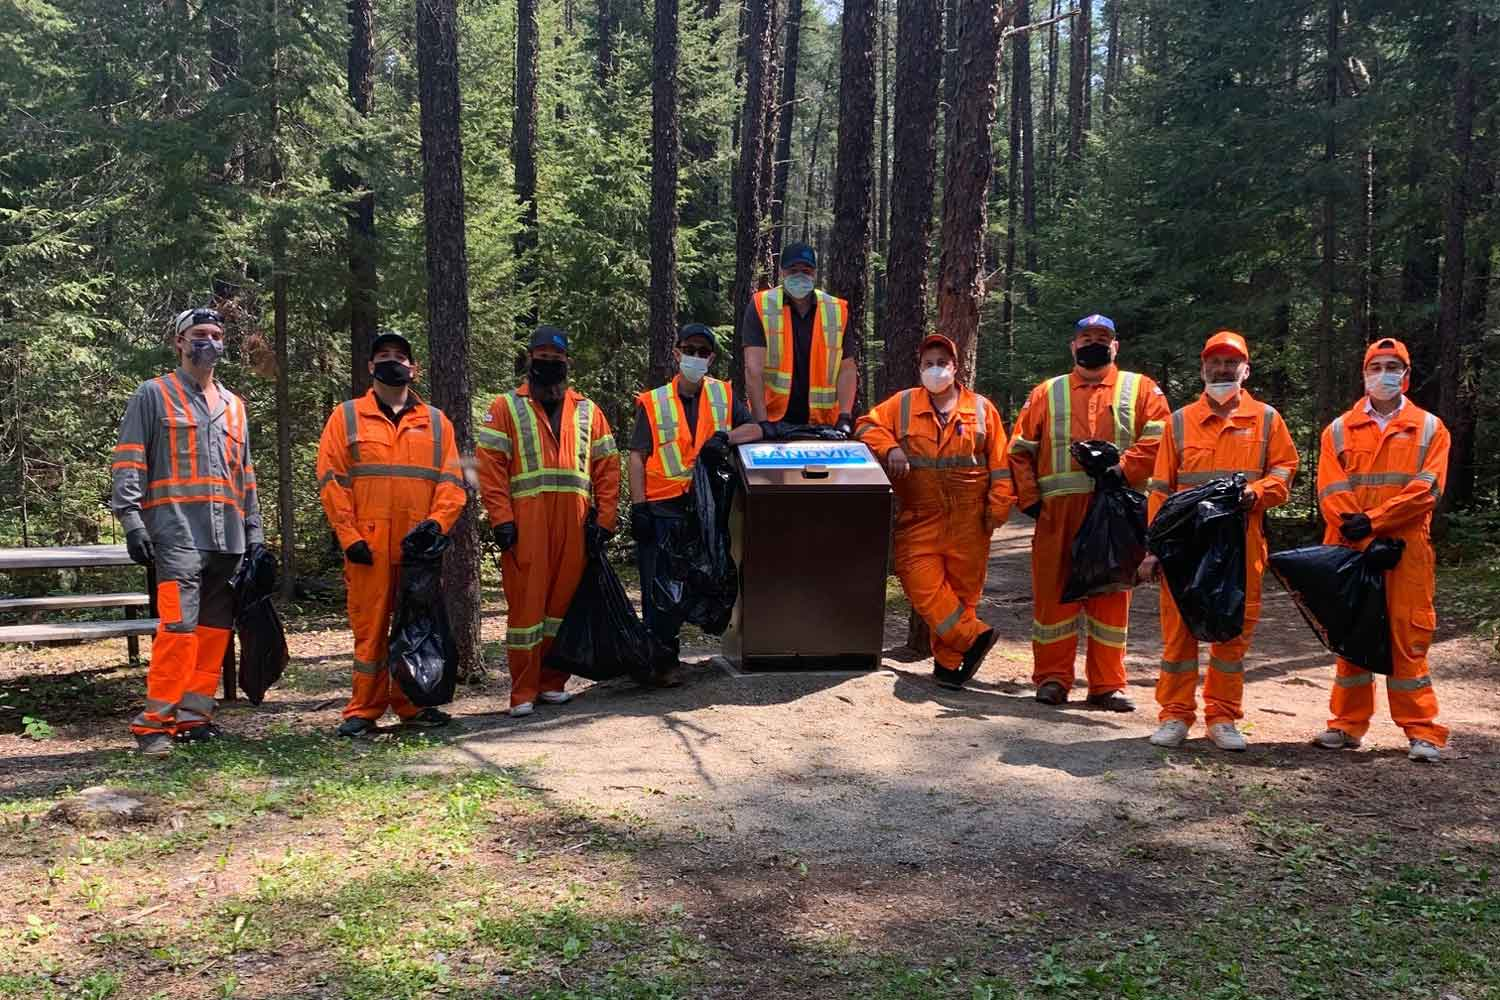 Sandvik Mining & Rock Technology team donates to help keep the trails clean